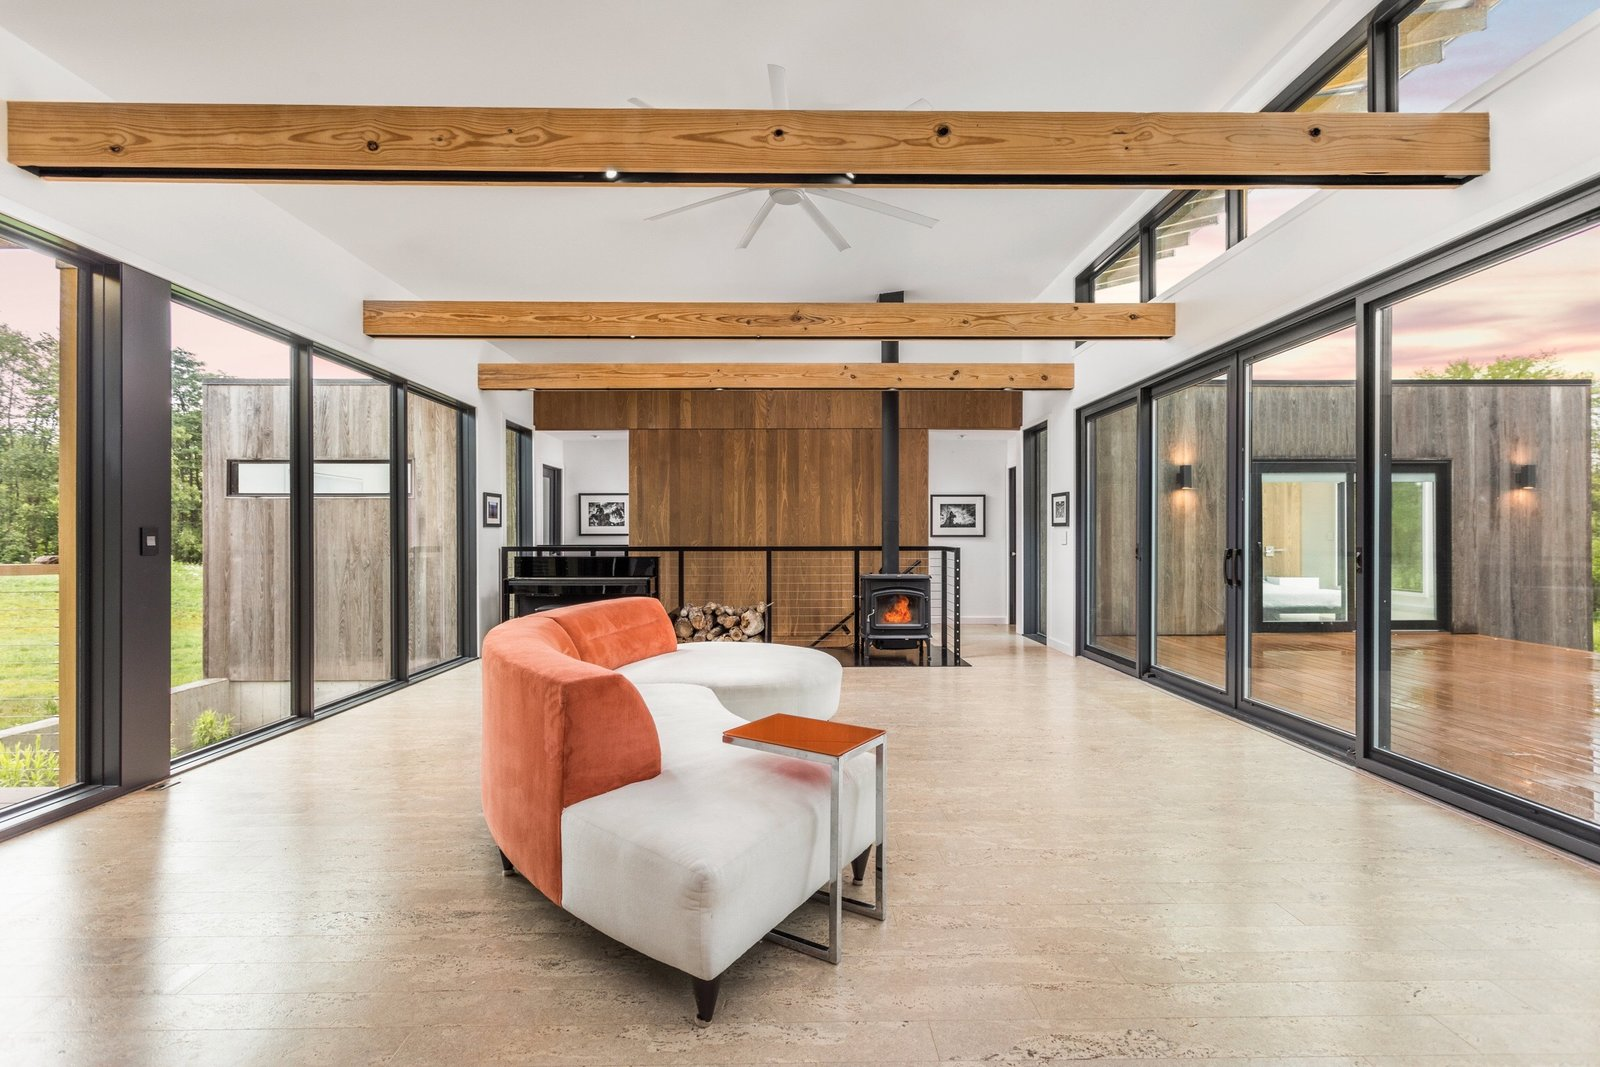 The main living space features north and south window walls. The flooring is cork.